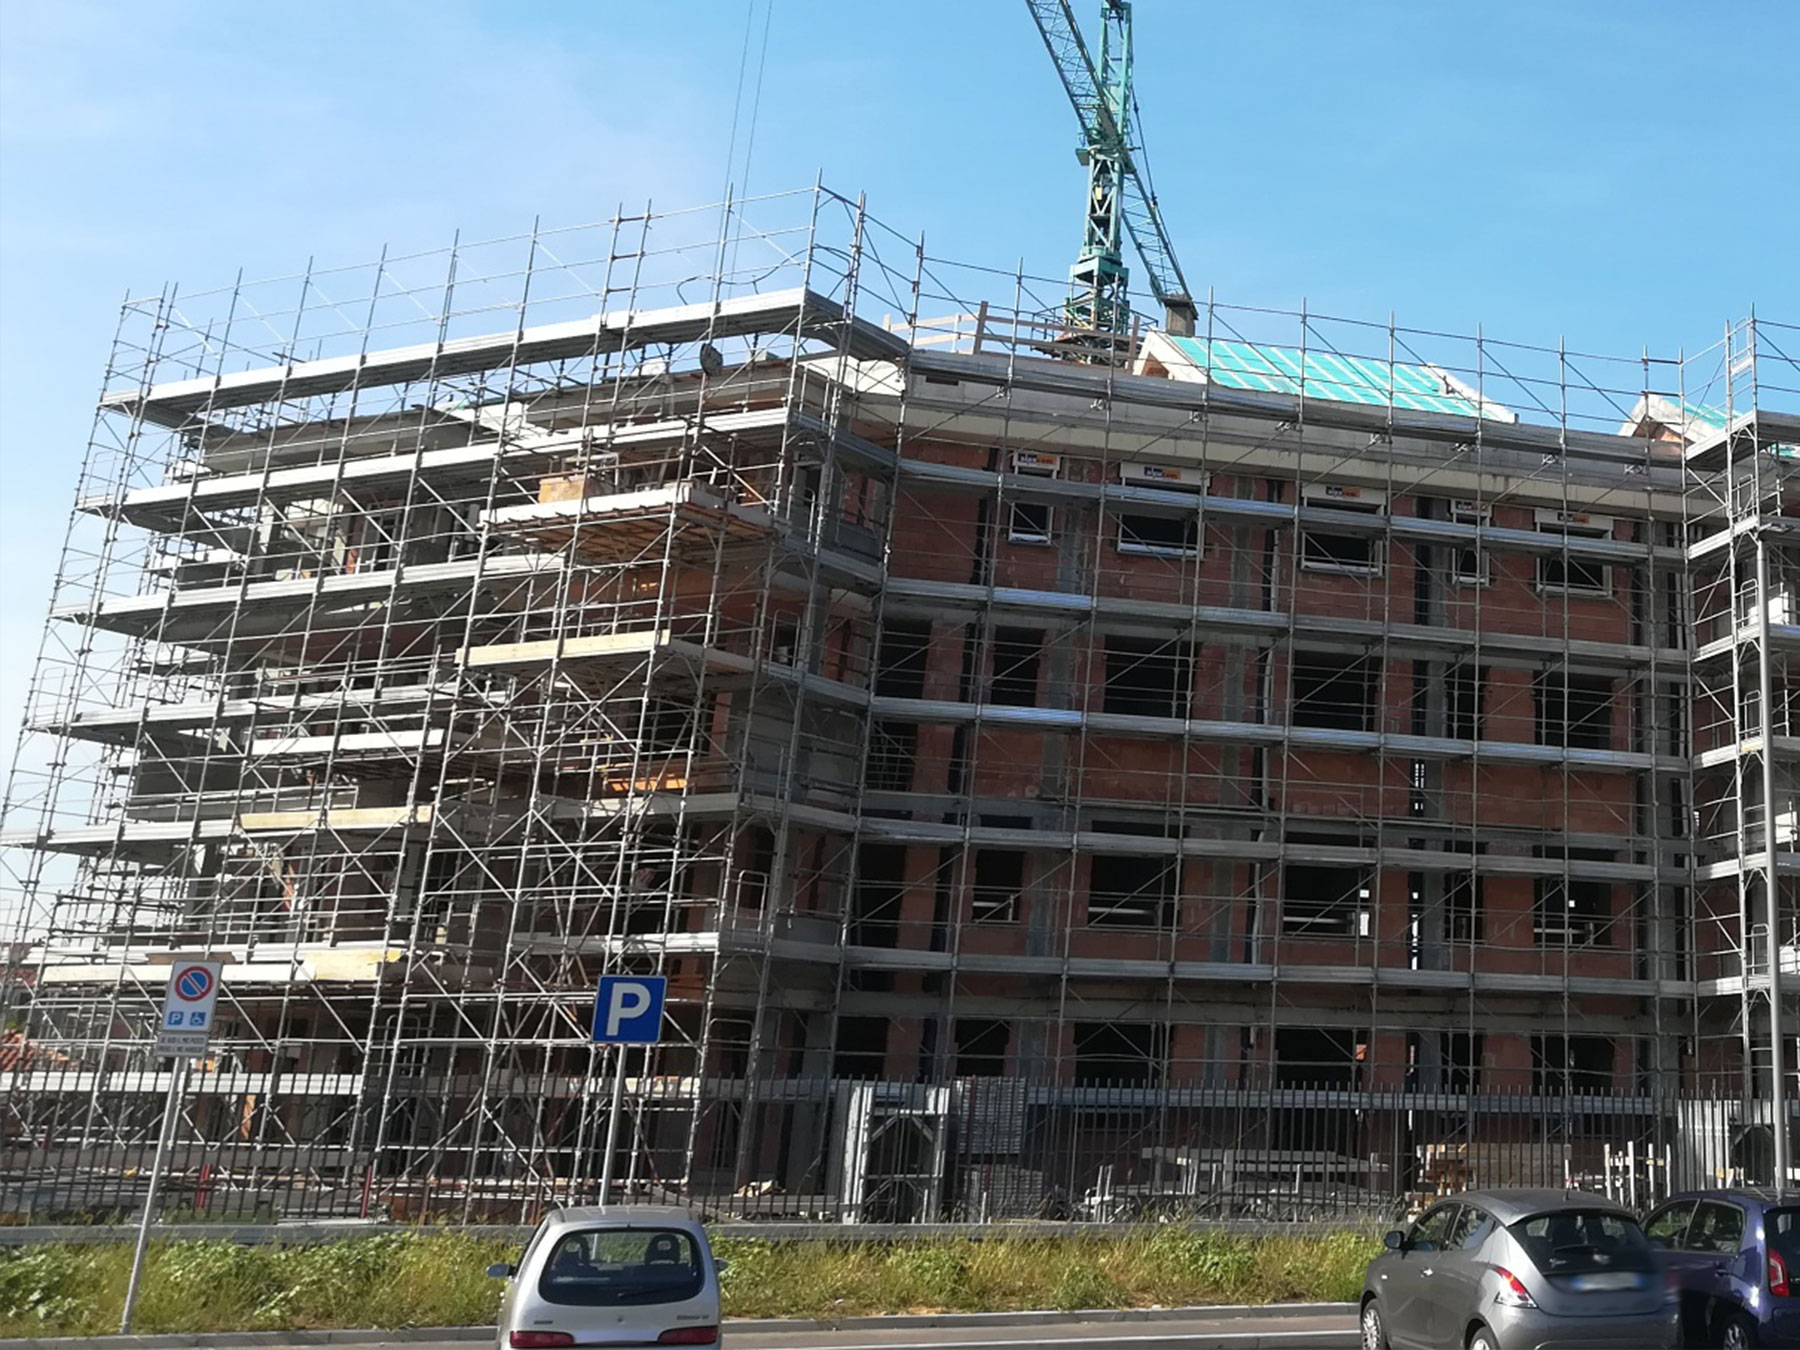 Cantiere Alpacom ad Agrate